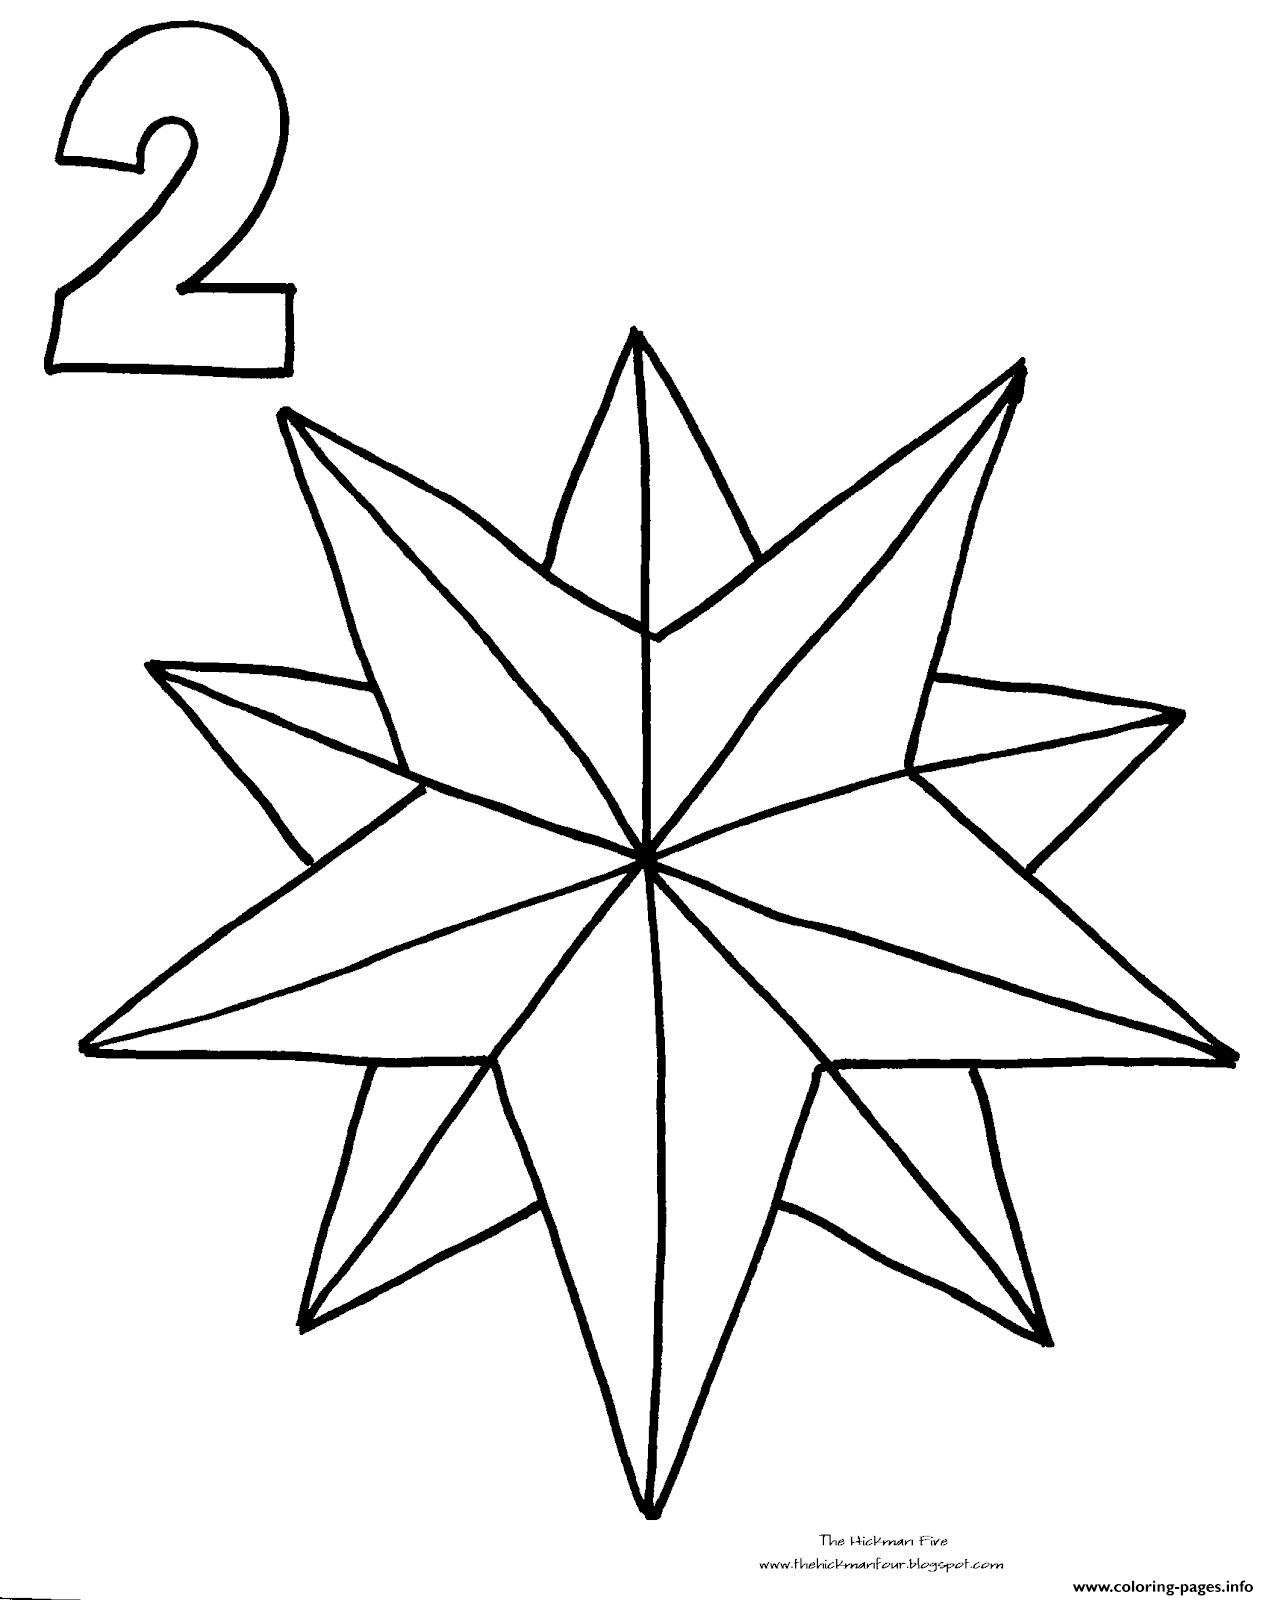 Star Drawing For Kids at GetDrawings.com | Free for personal use ...